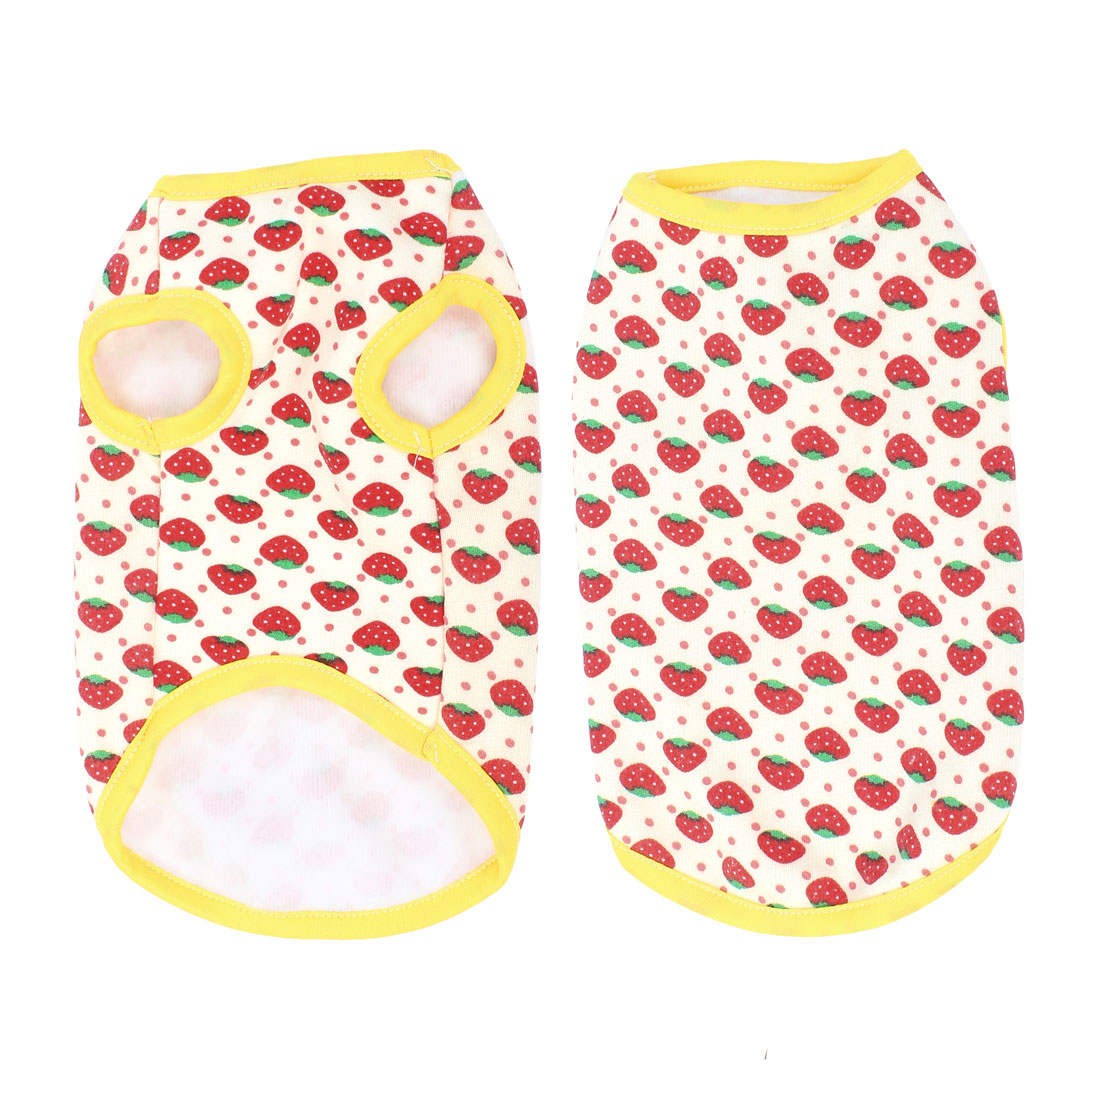 White Red Strawberry Prints Pet Chihuahua Dog Vest Apparel Clothes XS